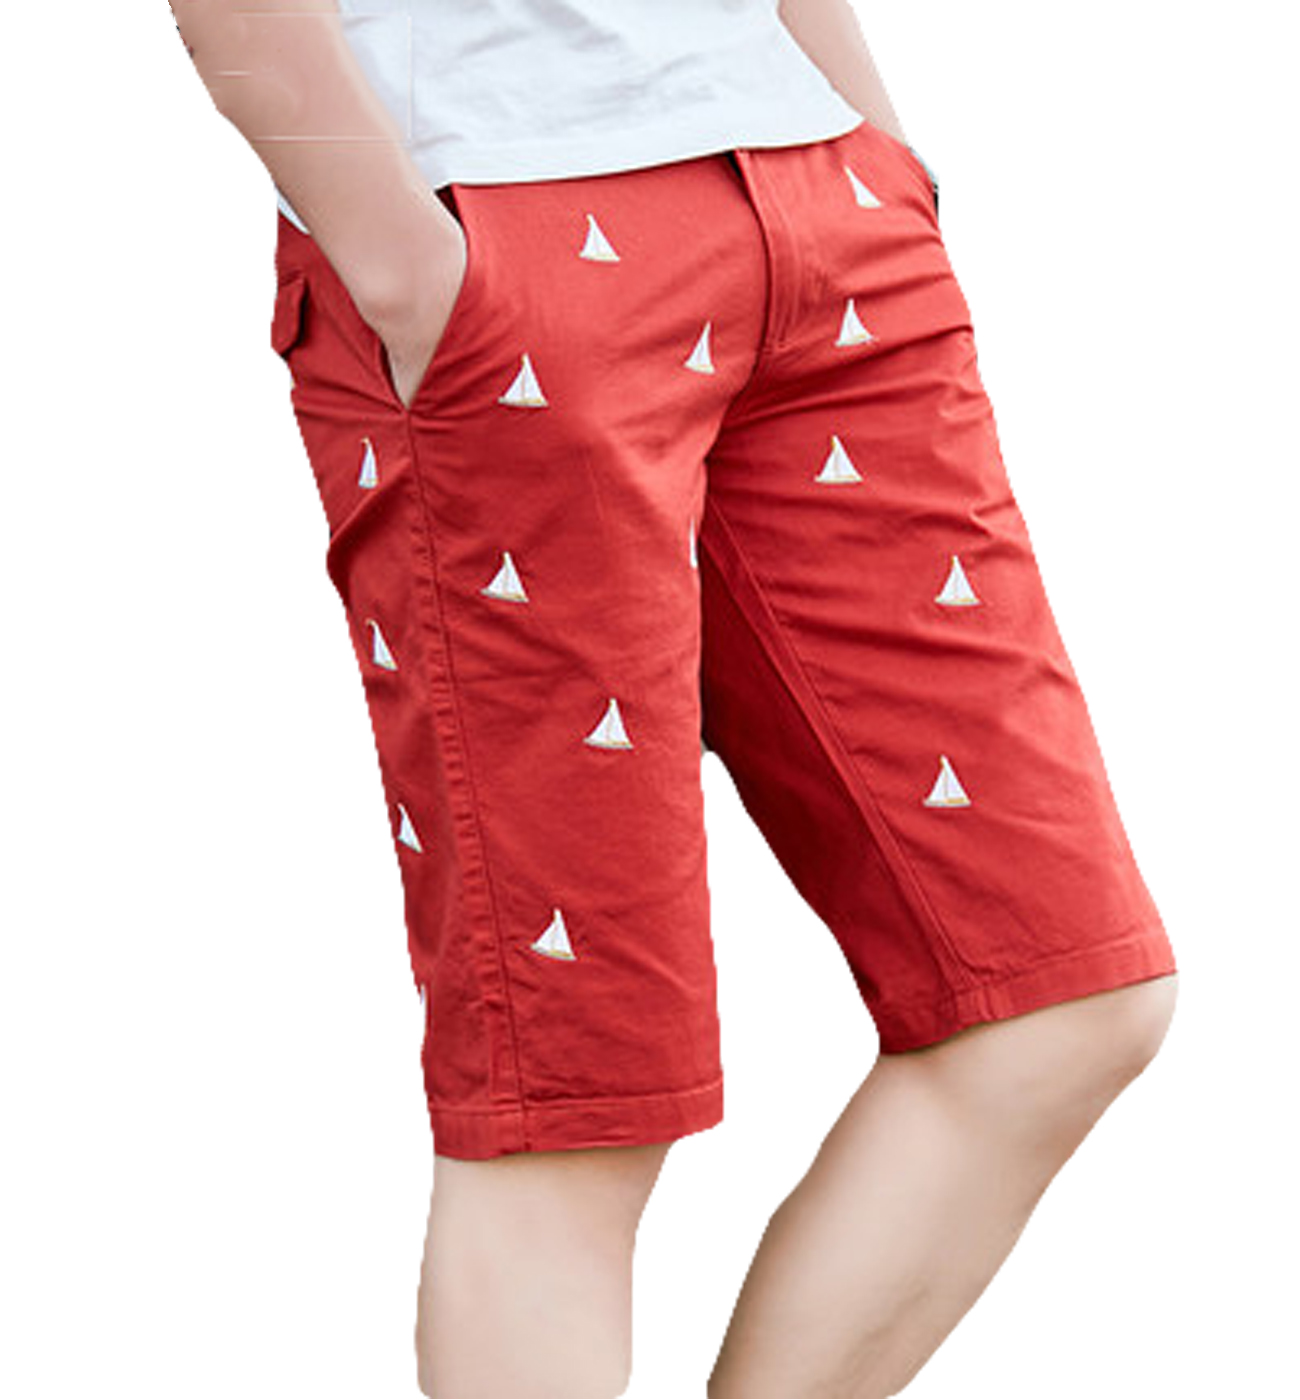 Red modern mens sail slim boats brodé short haut de gamme